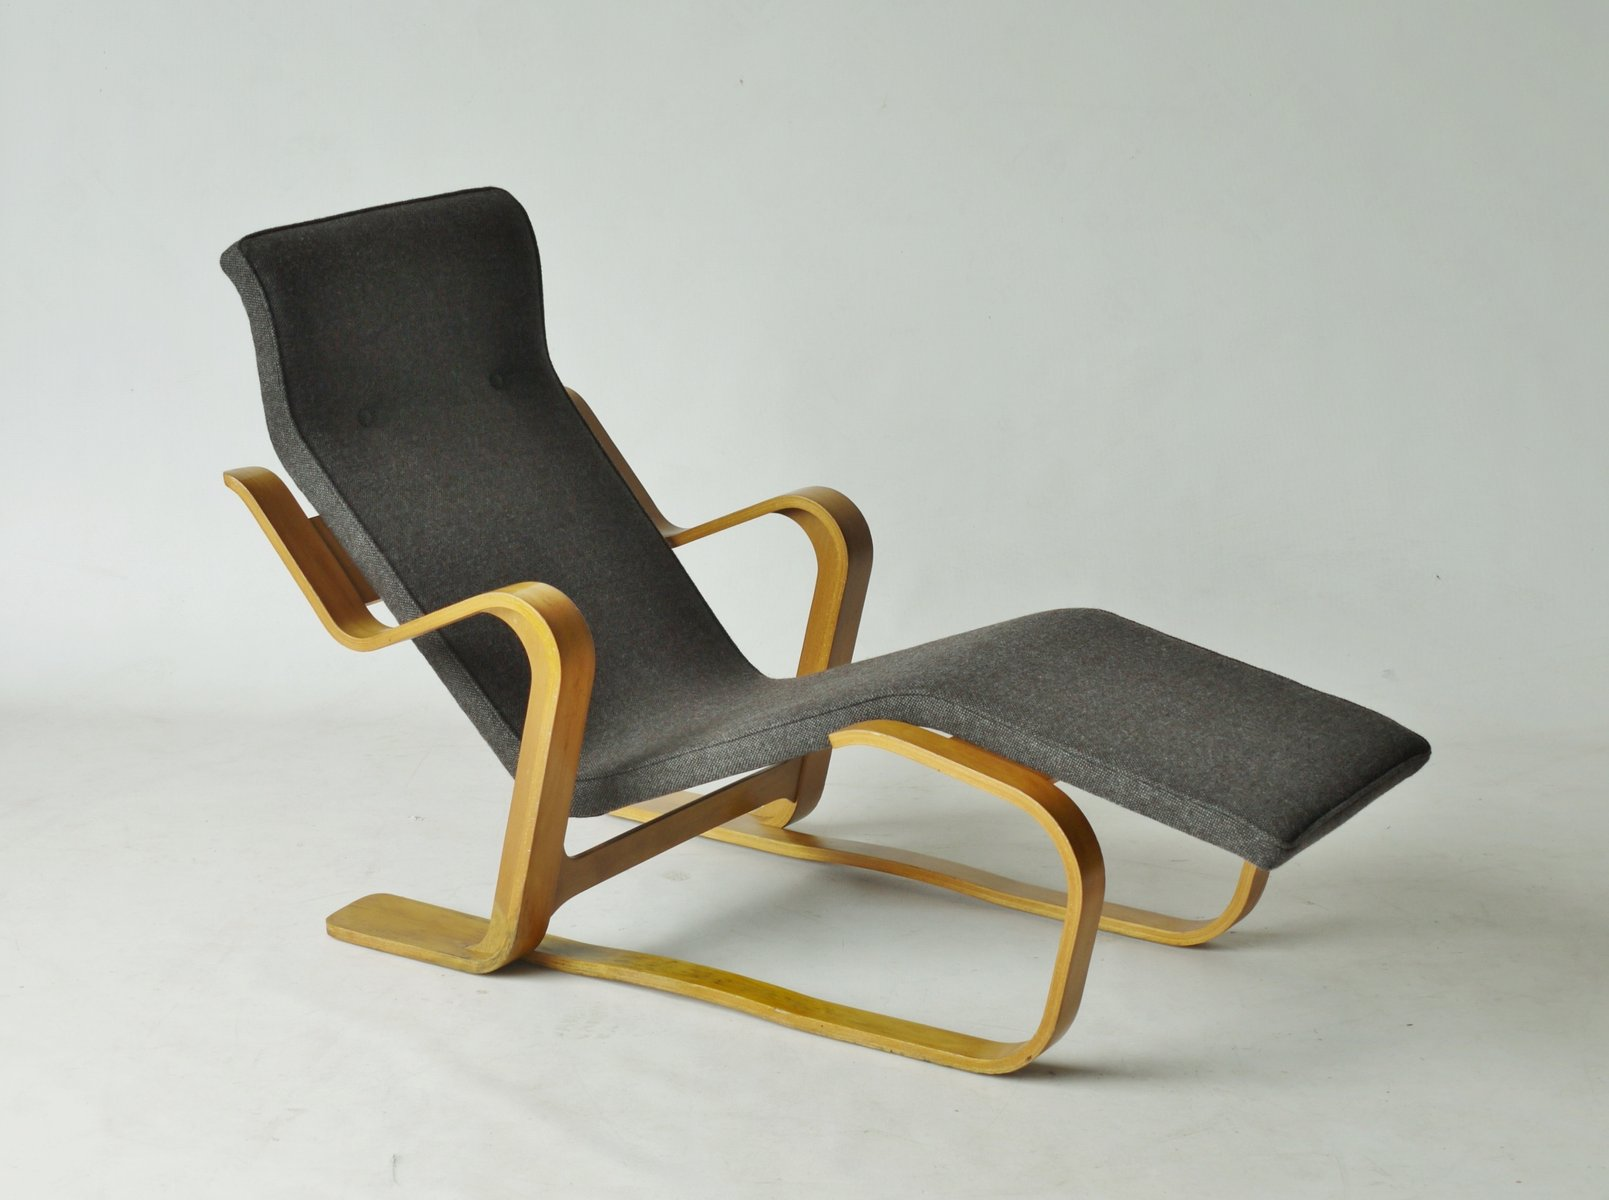 Modernist Plywood Long Chair by Marcel Breuer, 1960s for sale at Pamono